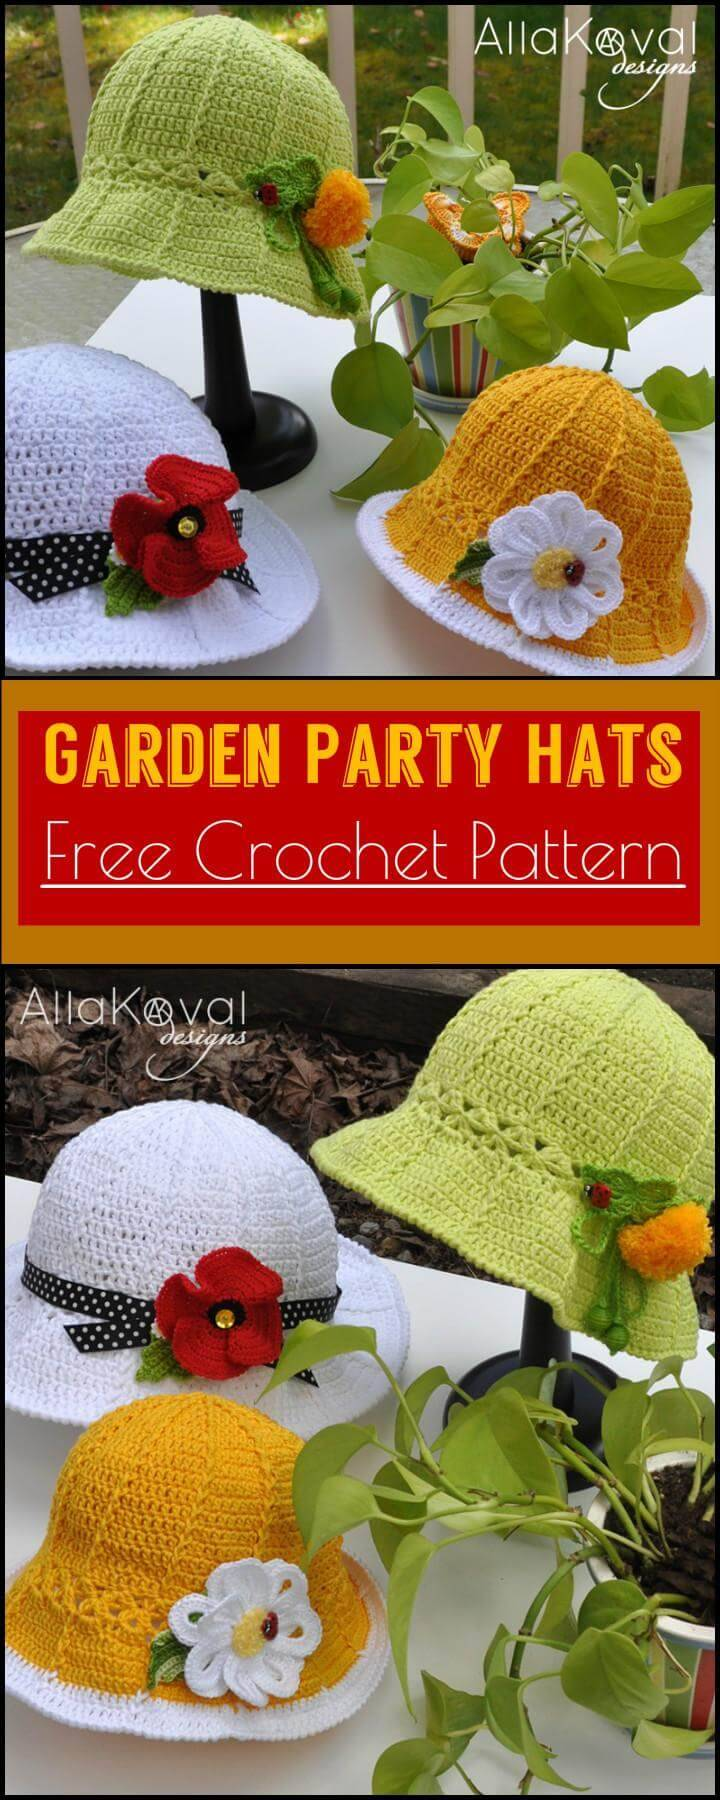 Garden Party Hats Free Crochet Pattern